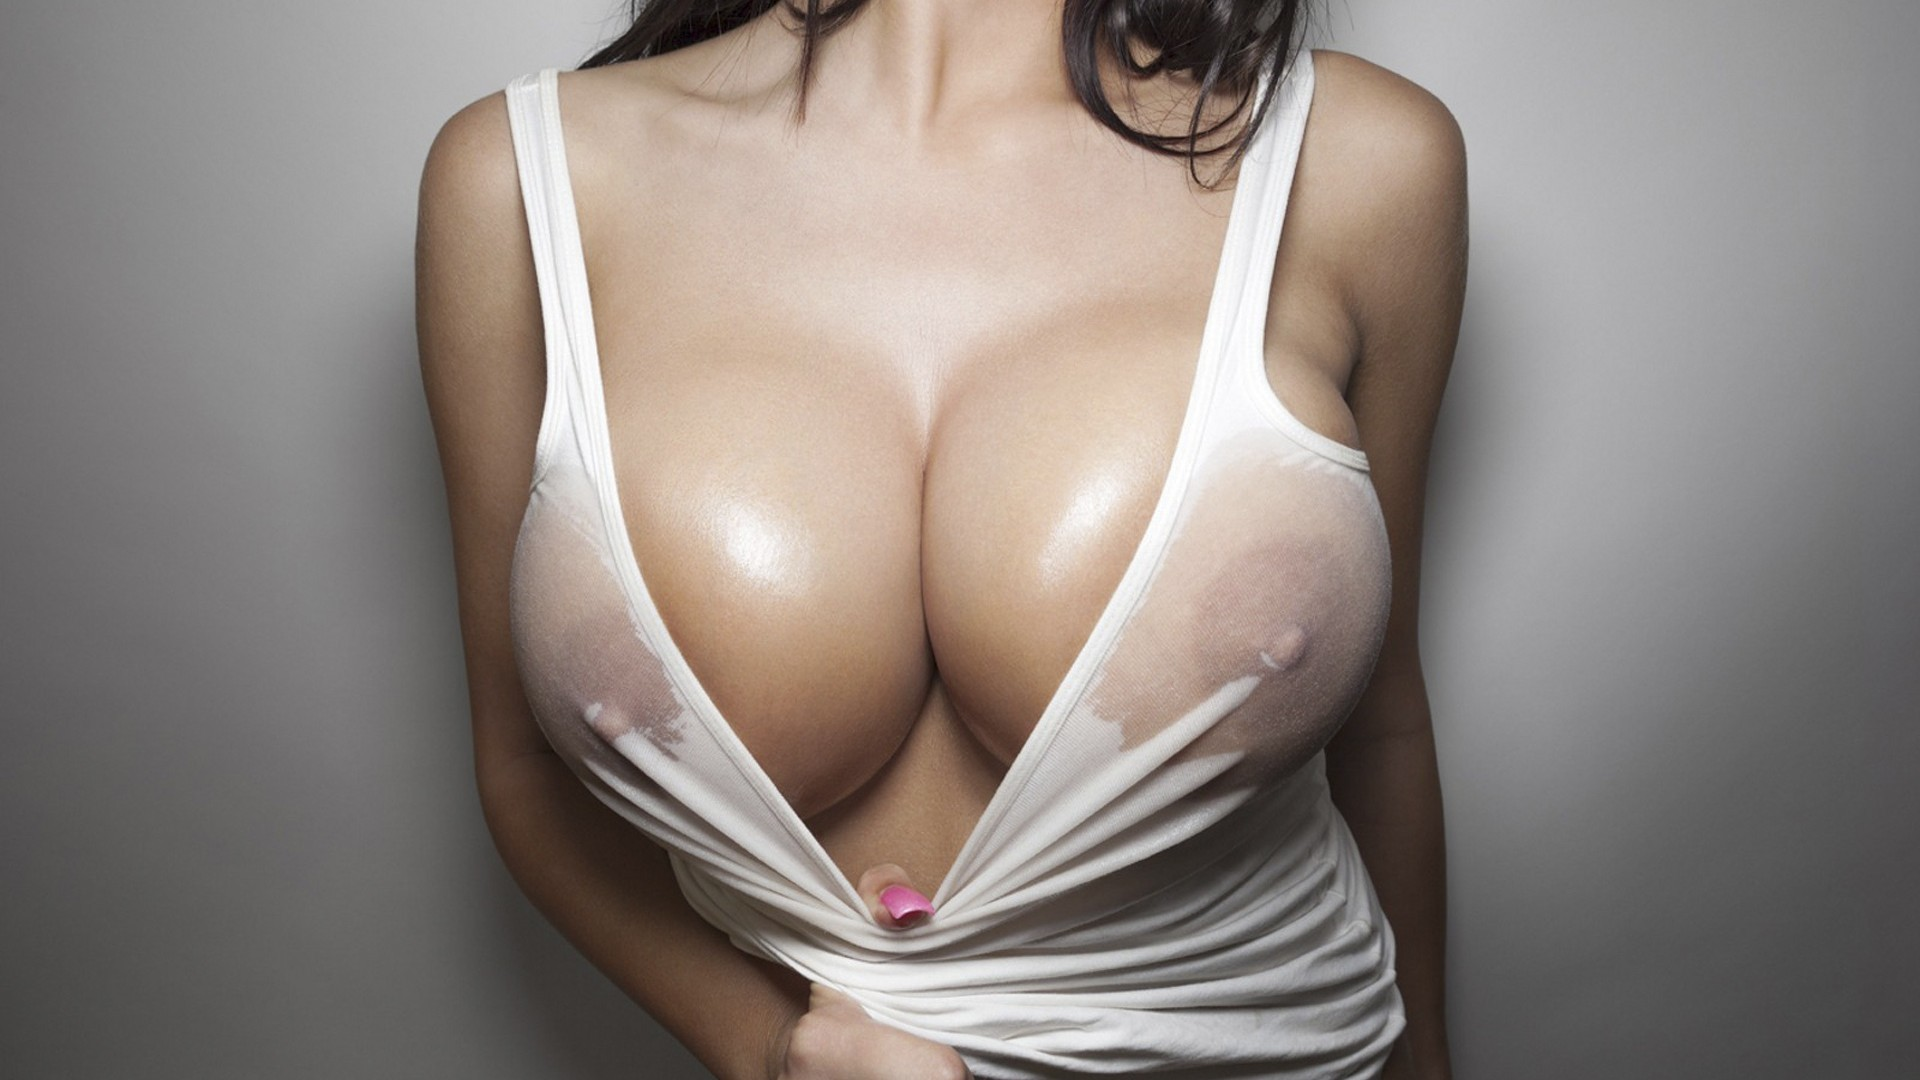 Hd tits wallpaper excellent and